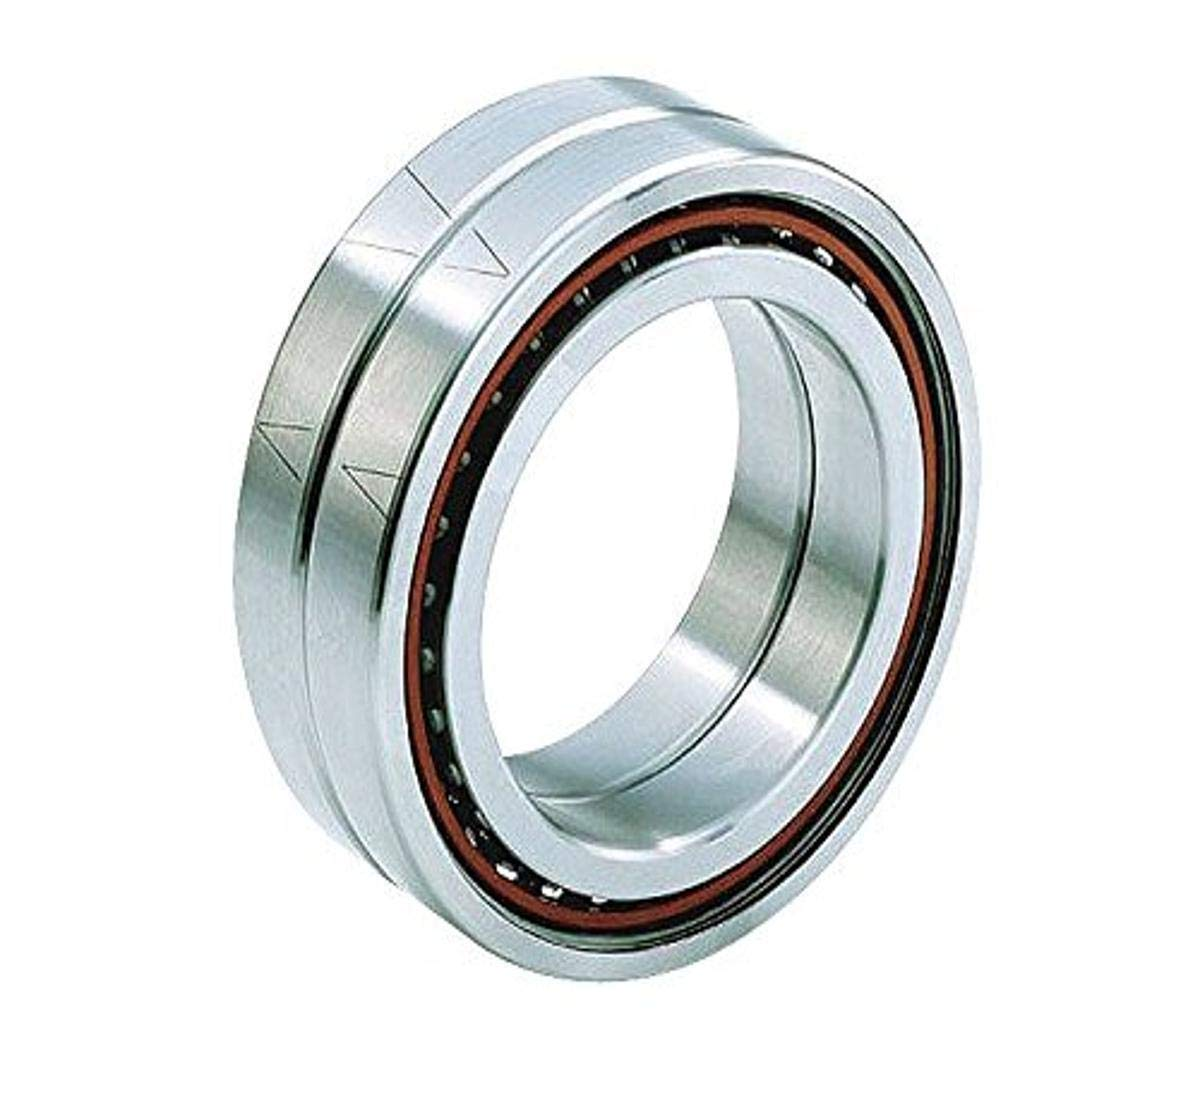 10 mm ID BAR   200HERRDUL Light Preload Double Seal 30 mm Width Pack of 2 Angular Contact Barden Bearings 200HERRDUL Pair Ball Bearings 30 mm OD Spindle Contact Angle 25/°